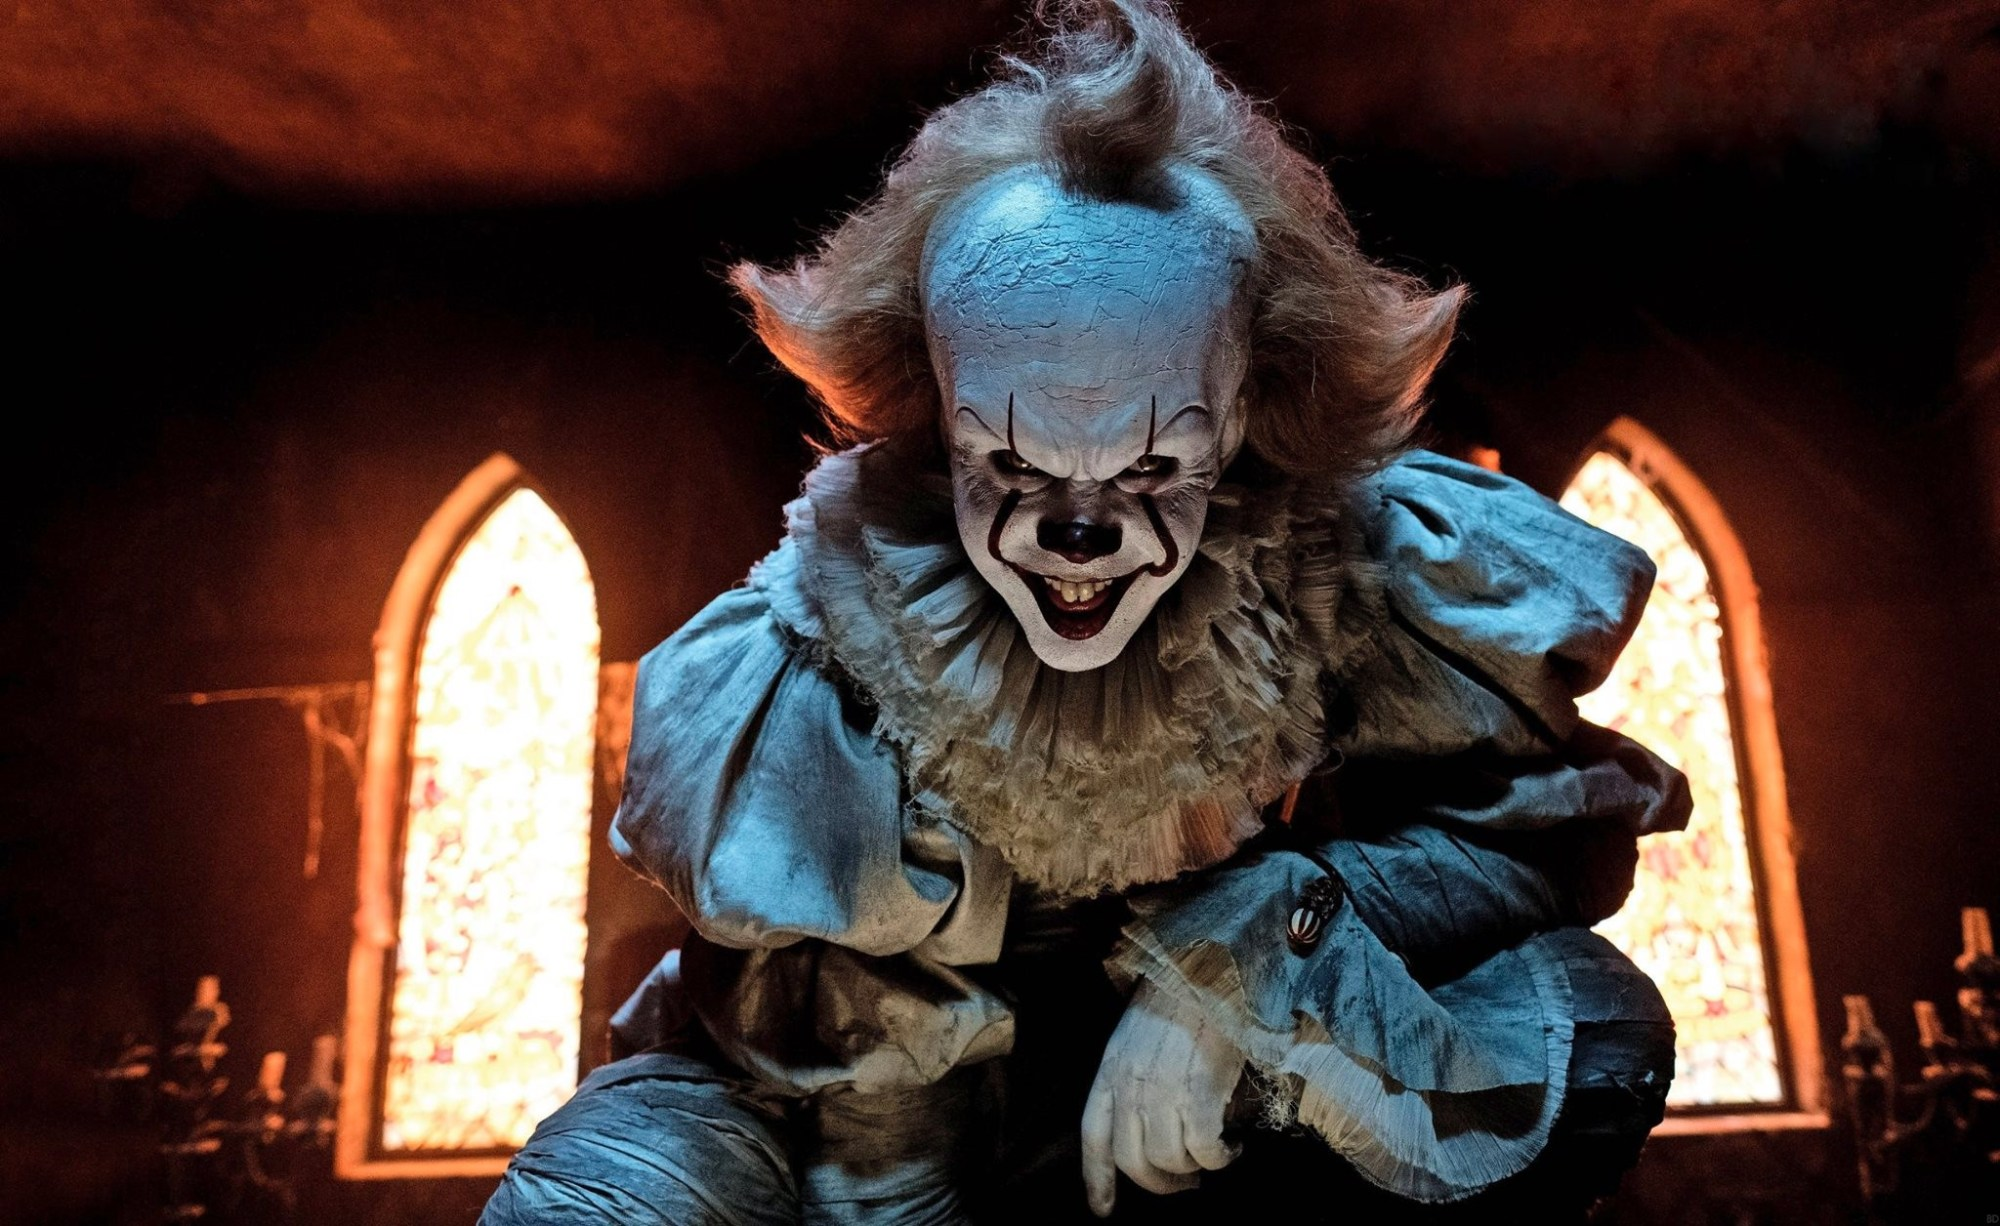 it-pennywise-image.jpg